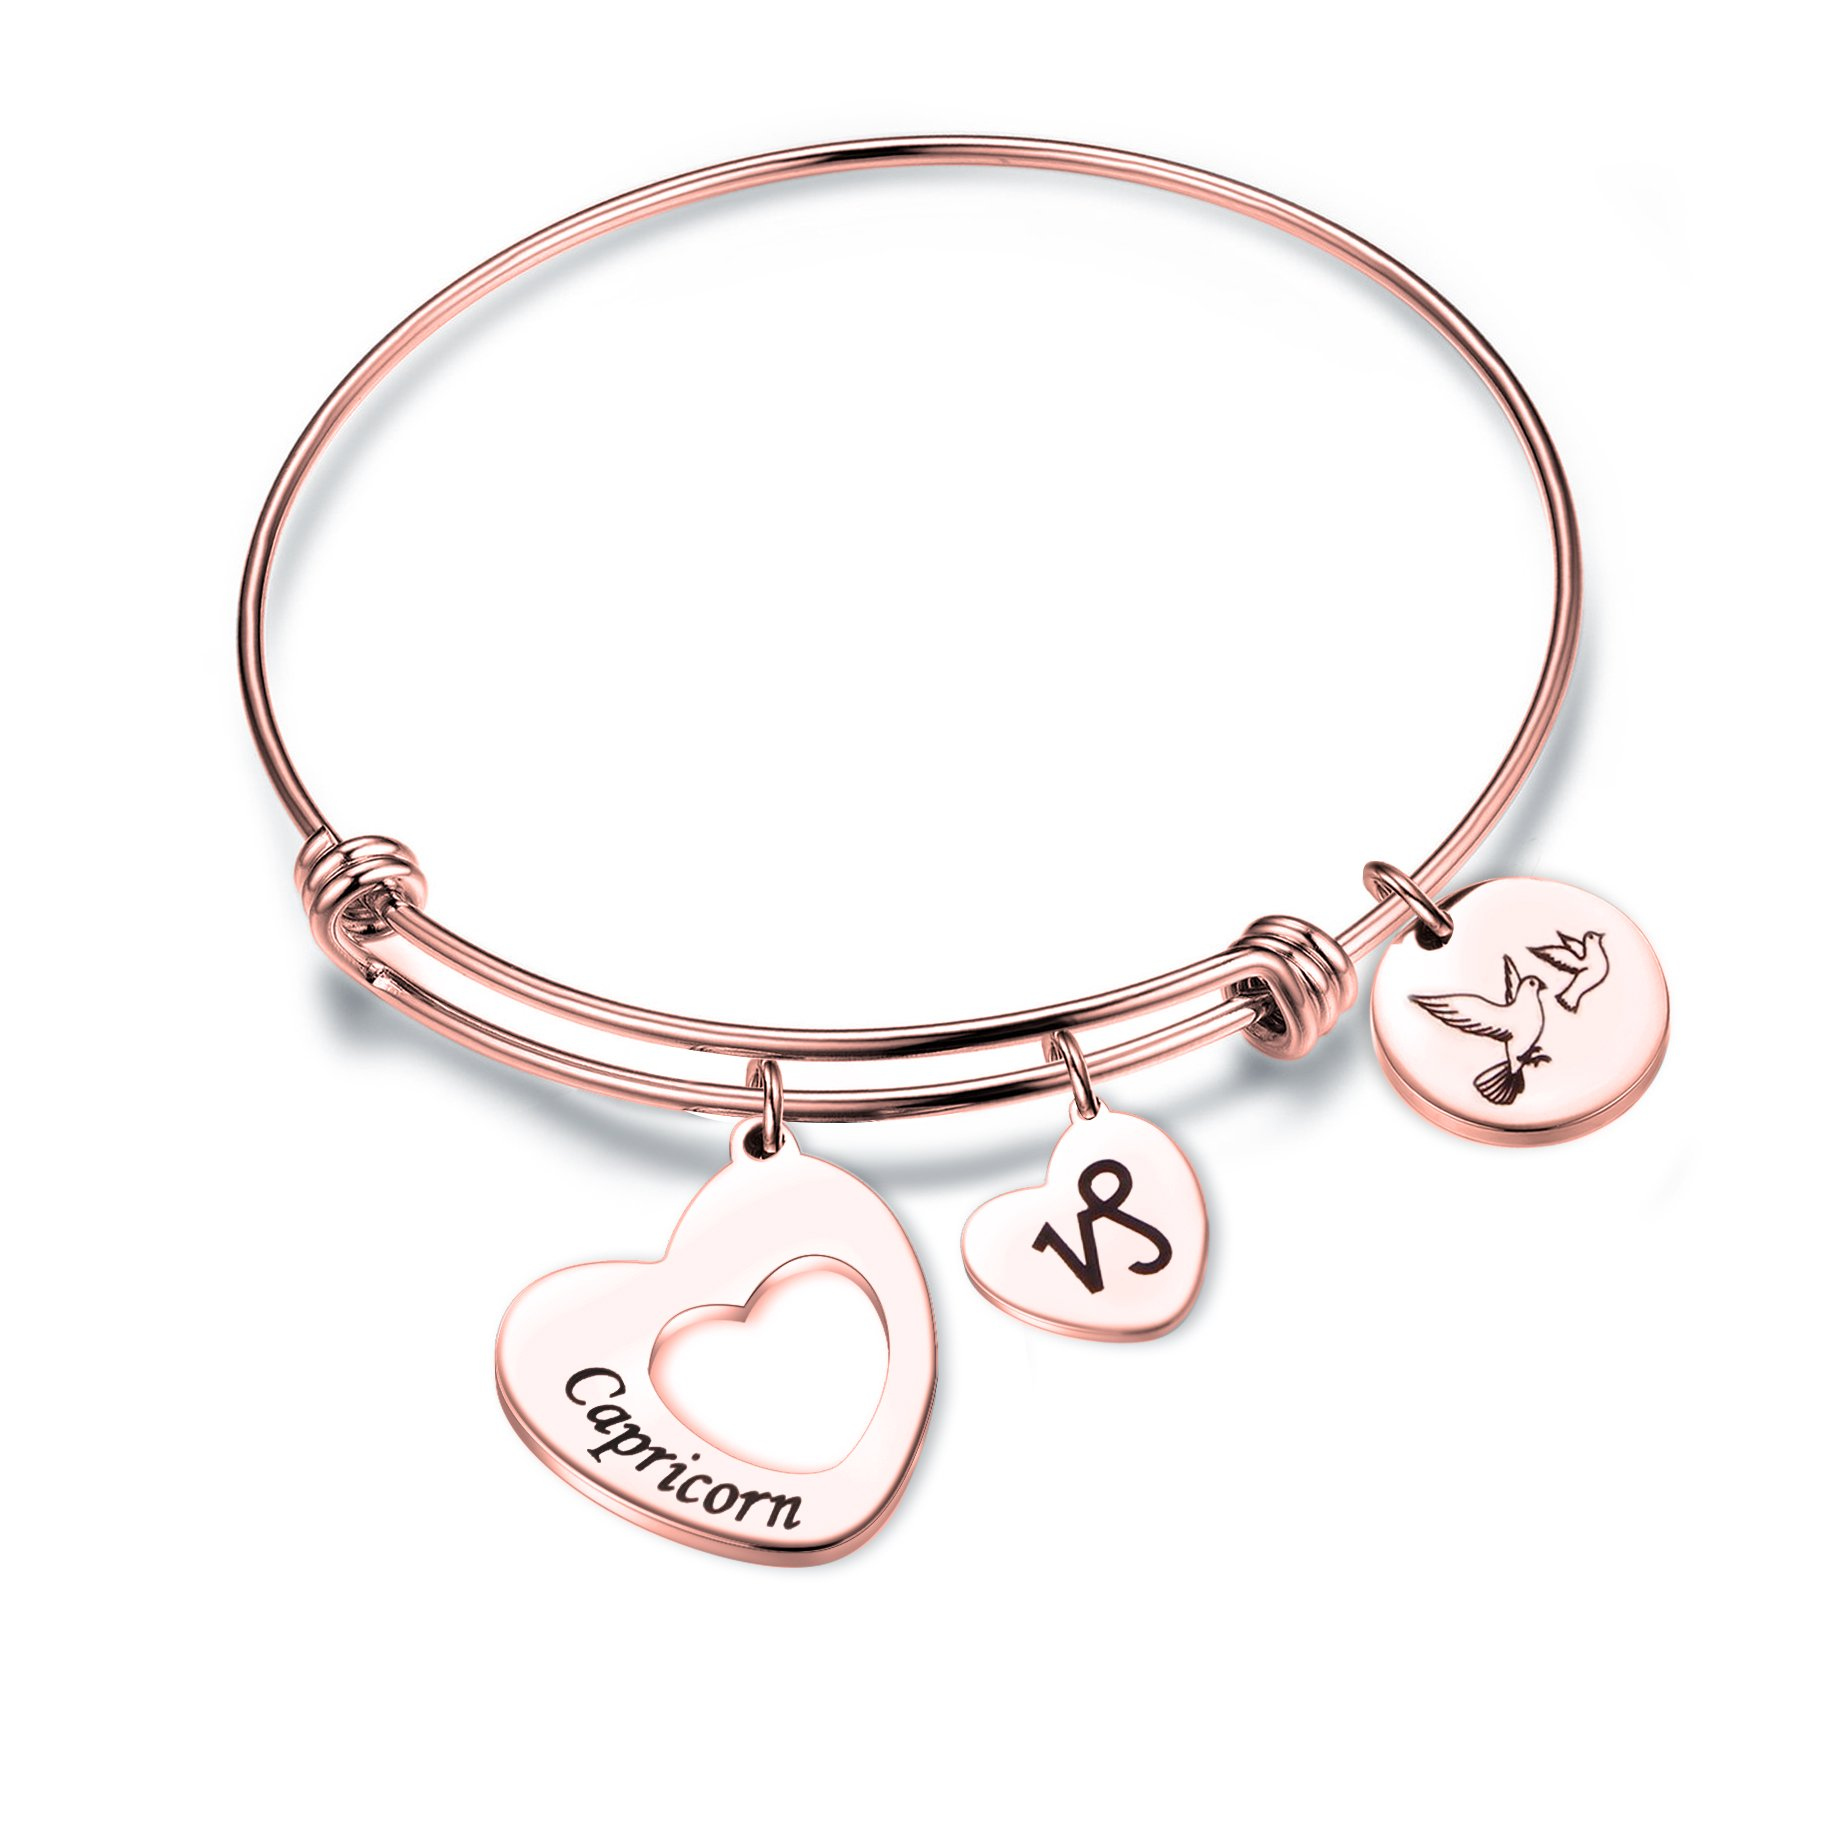 MAOFAED Rose Gold Zodiac Sign Constellation bracelet for Women Girl Gifts (Capricorn-Rose Gold)